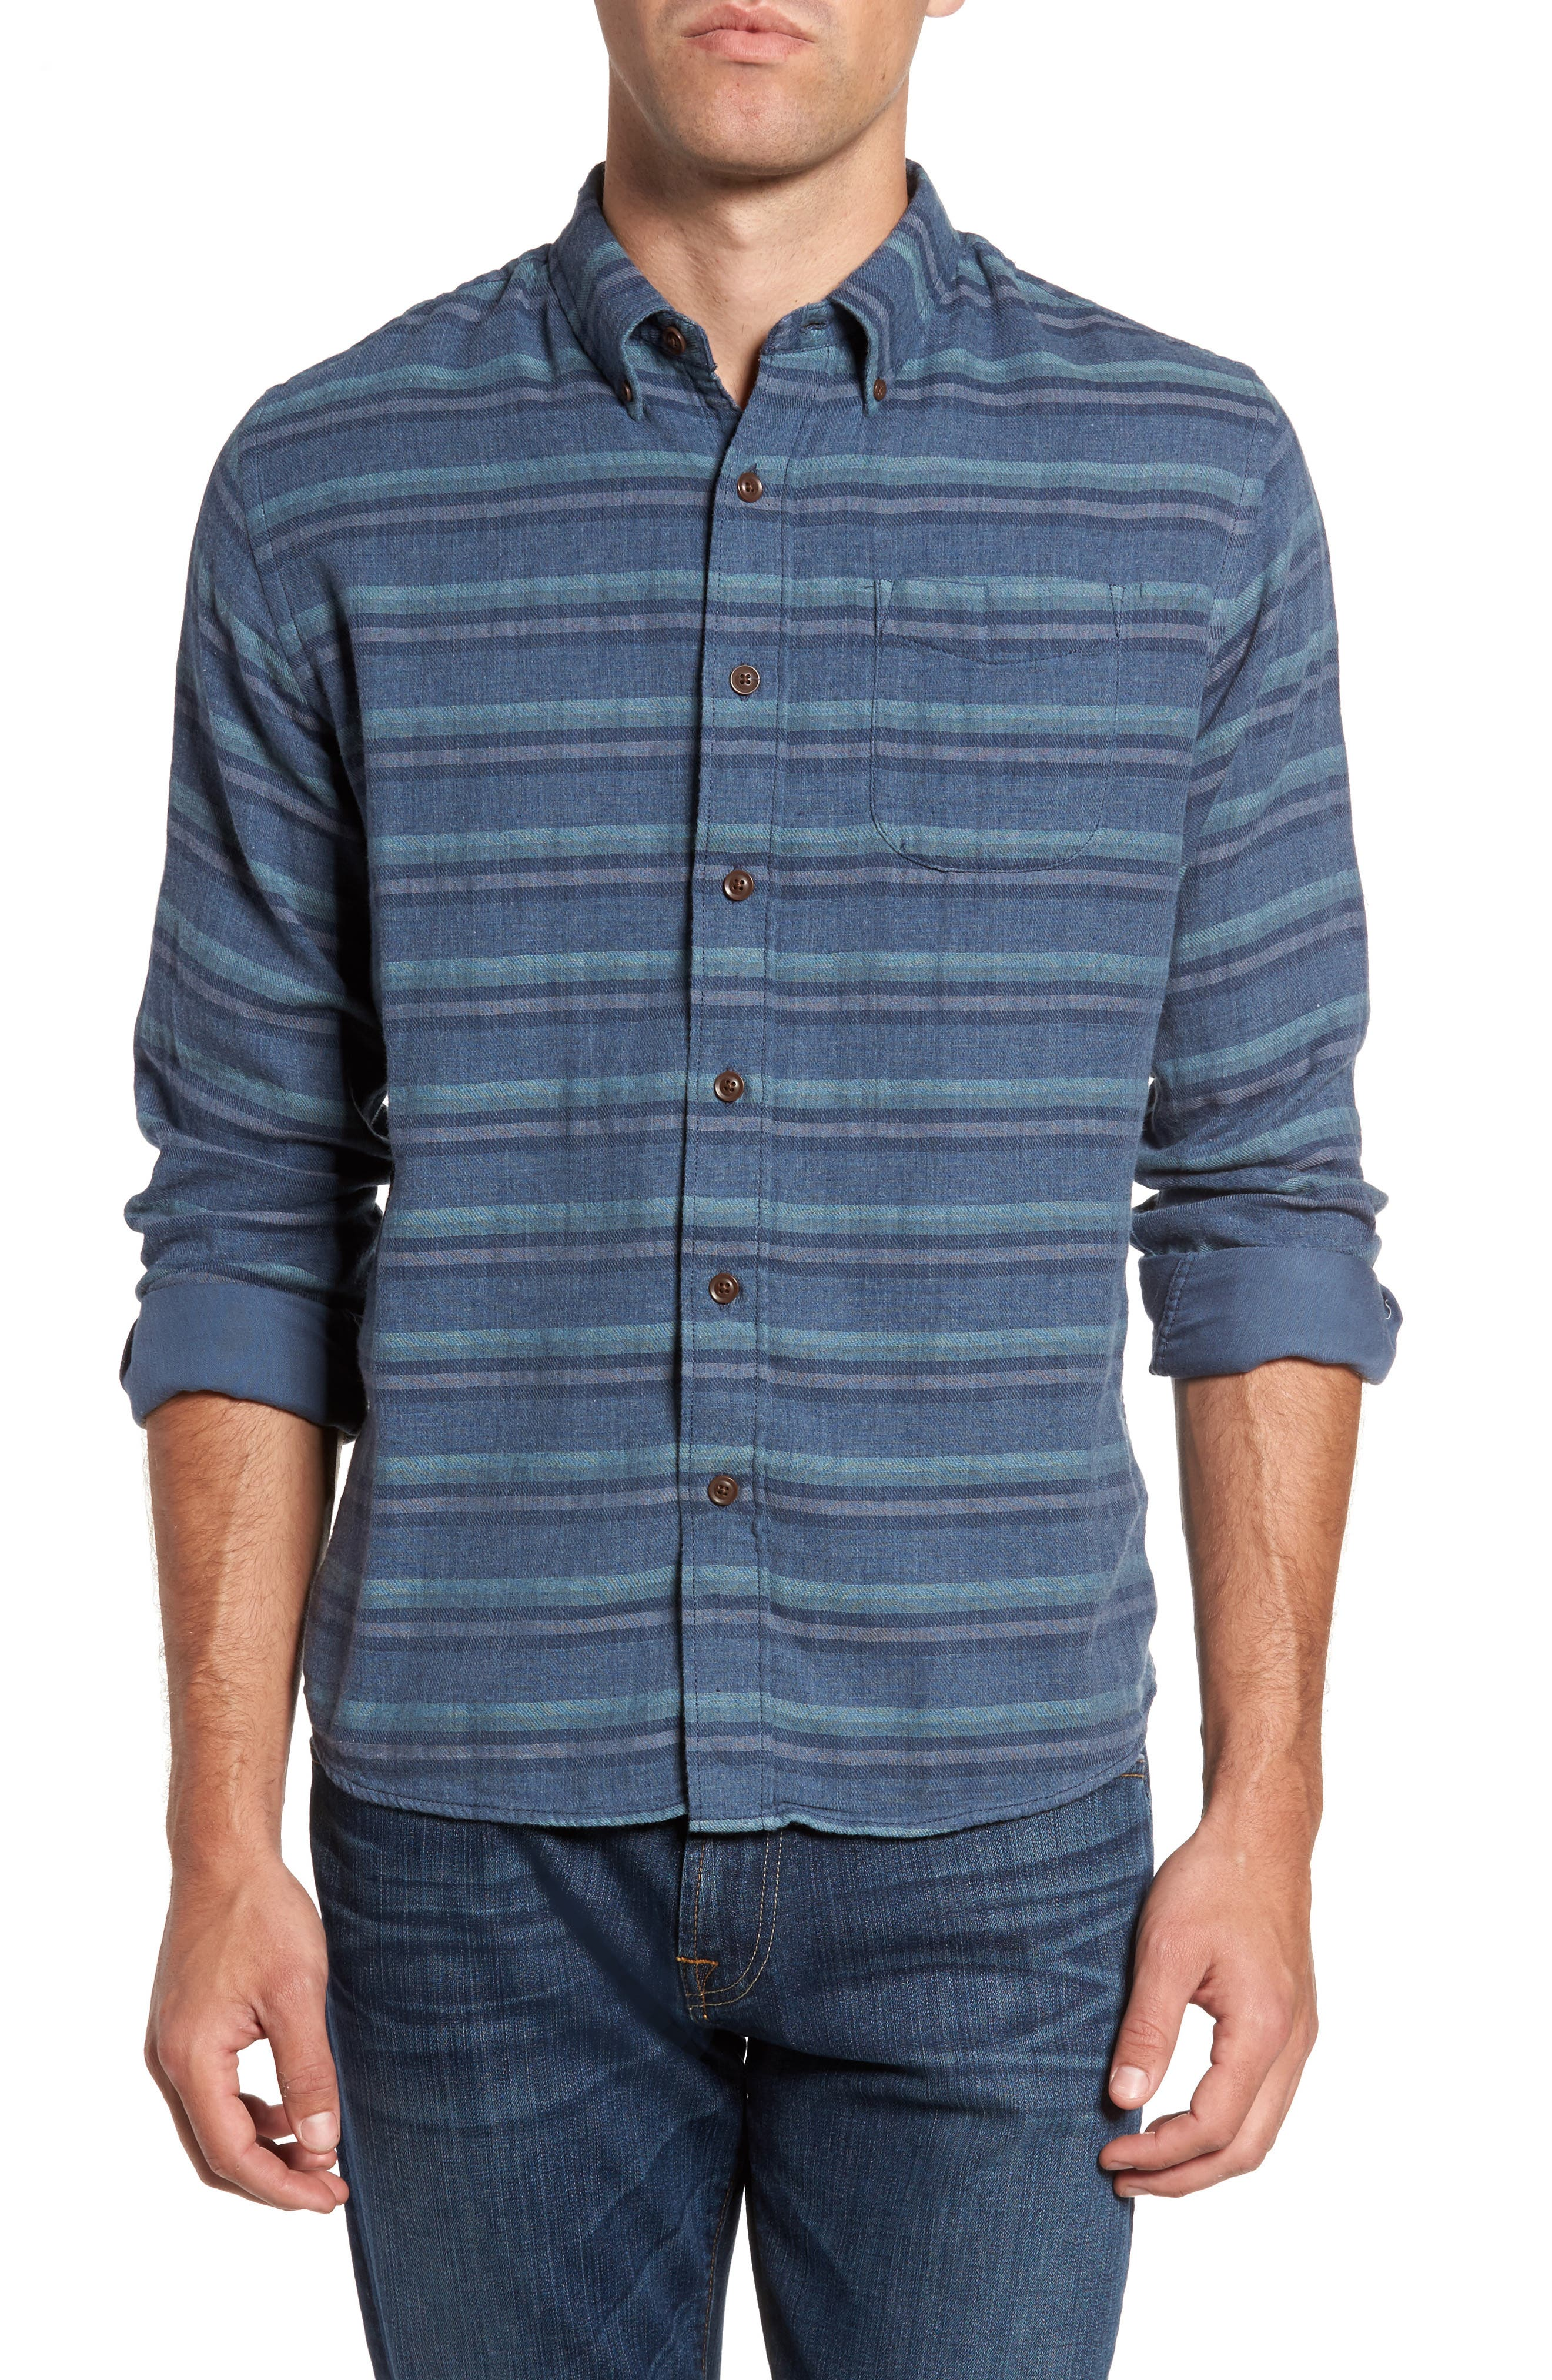 Main Image - Grayers Harcourt Modern Fit Double Cloth Striped Sport Shirt